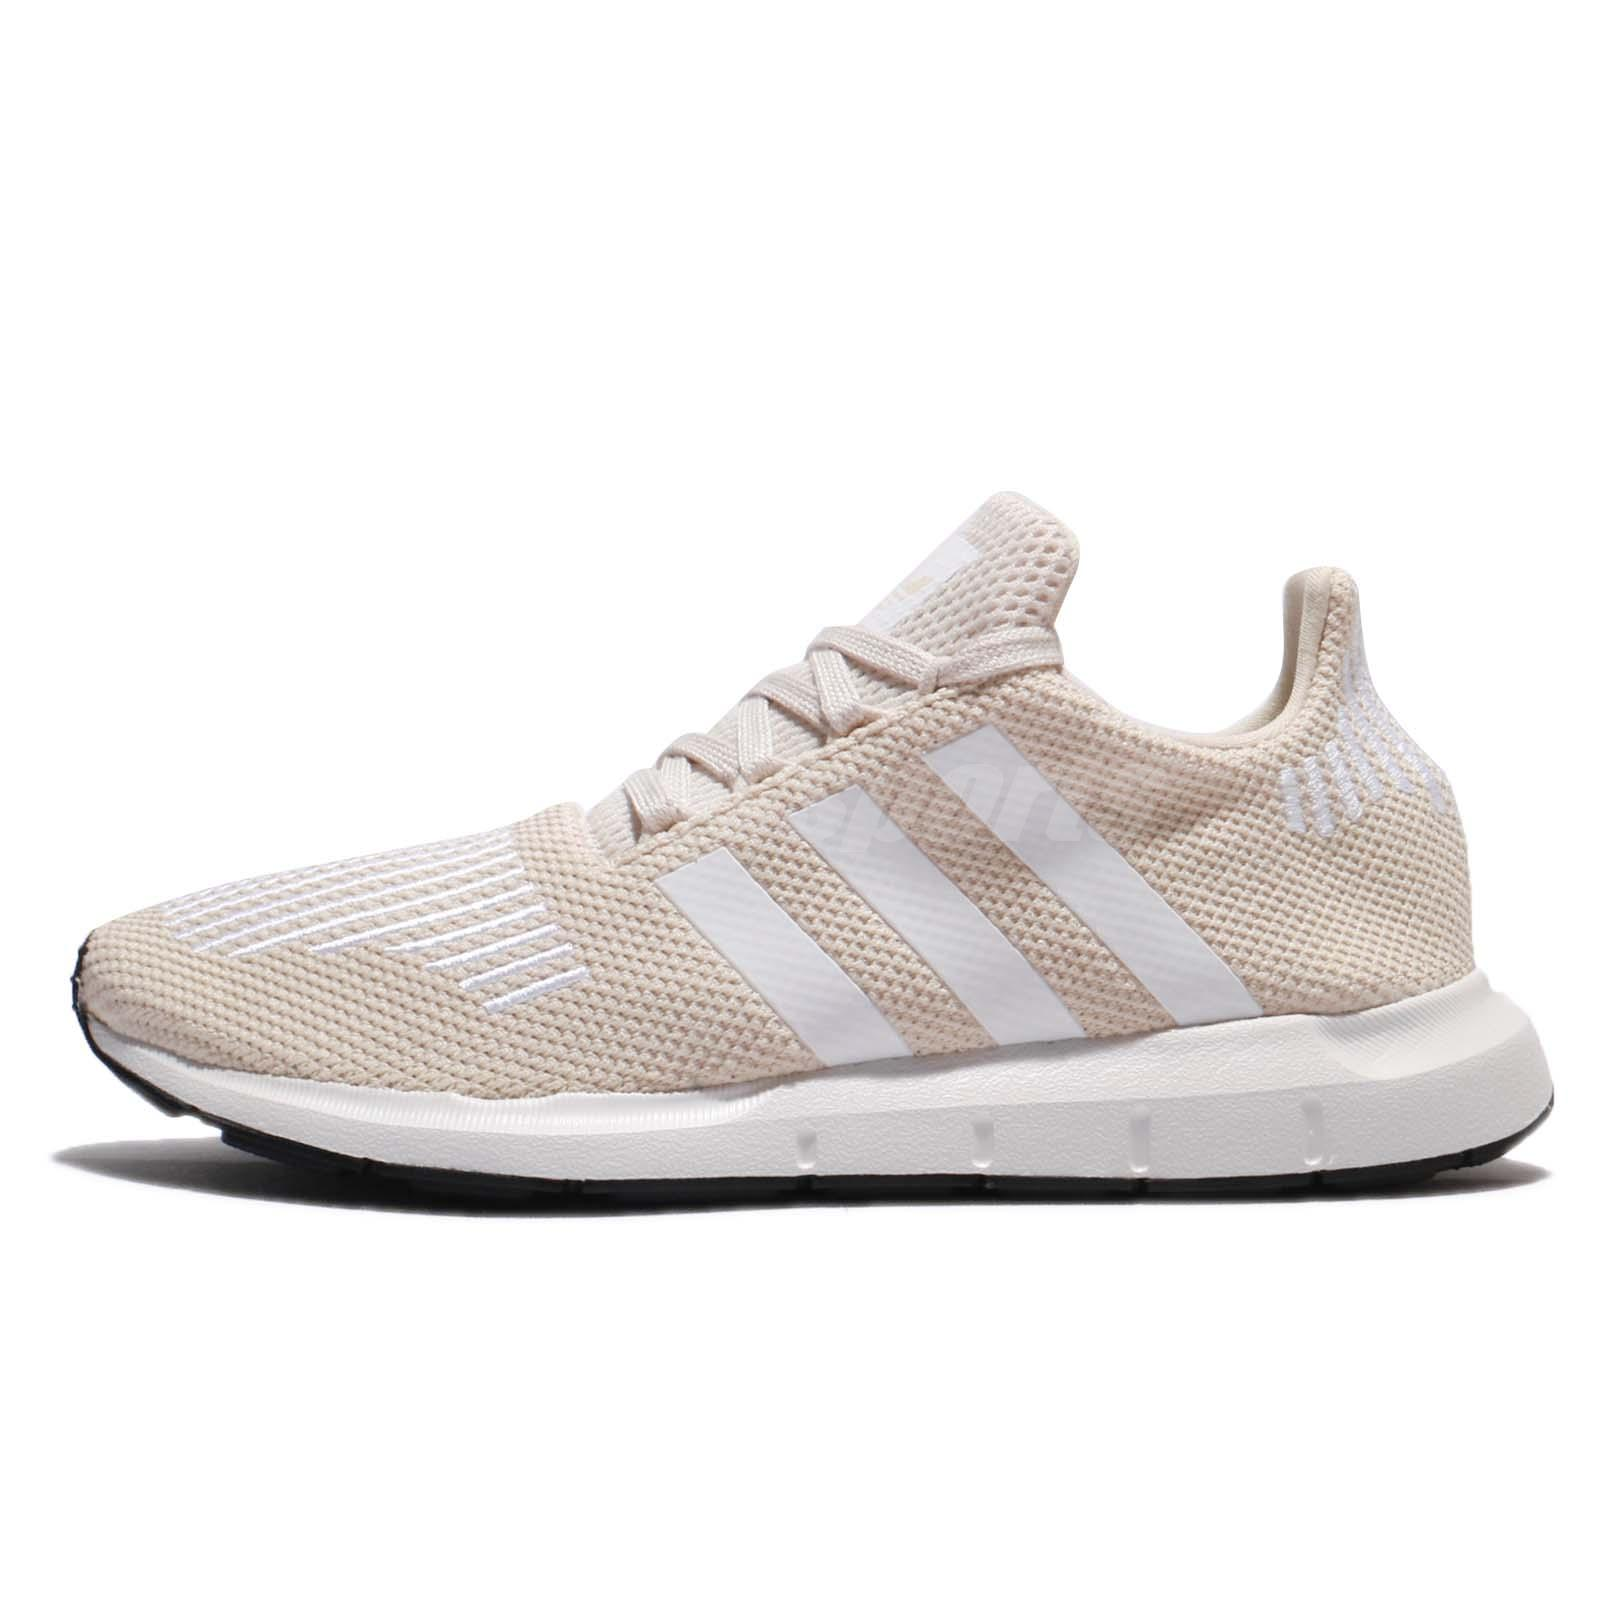 adidas Originals Swift Run W Beige White Women Running Shoes Sneakers CG4141